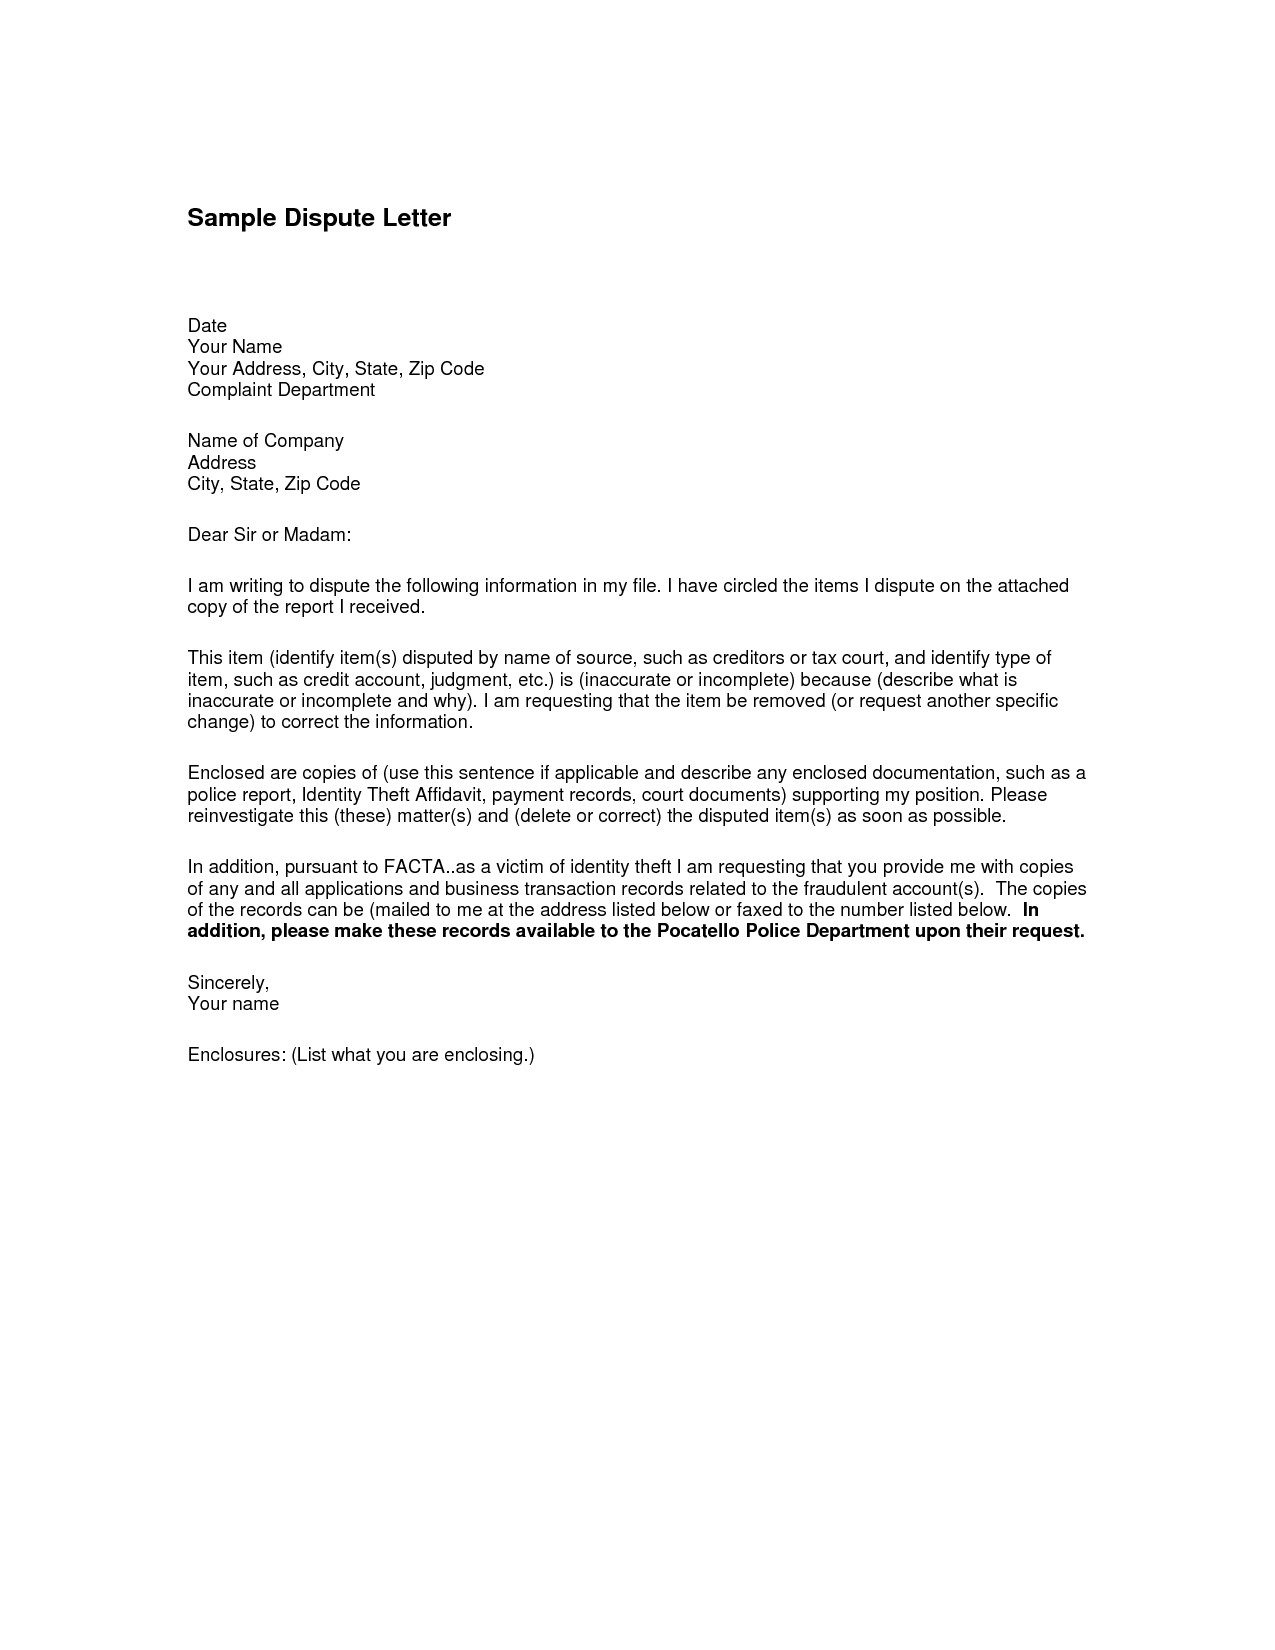 Invoice Letter Template - Invoice Dispute Letter Awesome How to Write An Excellent Resume Rfp